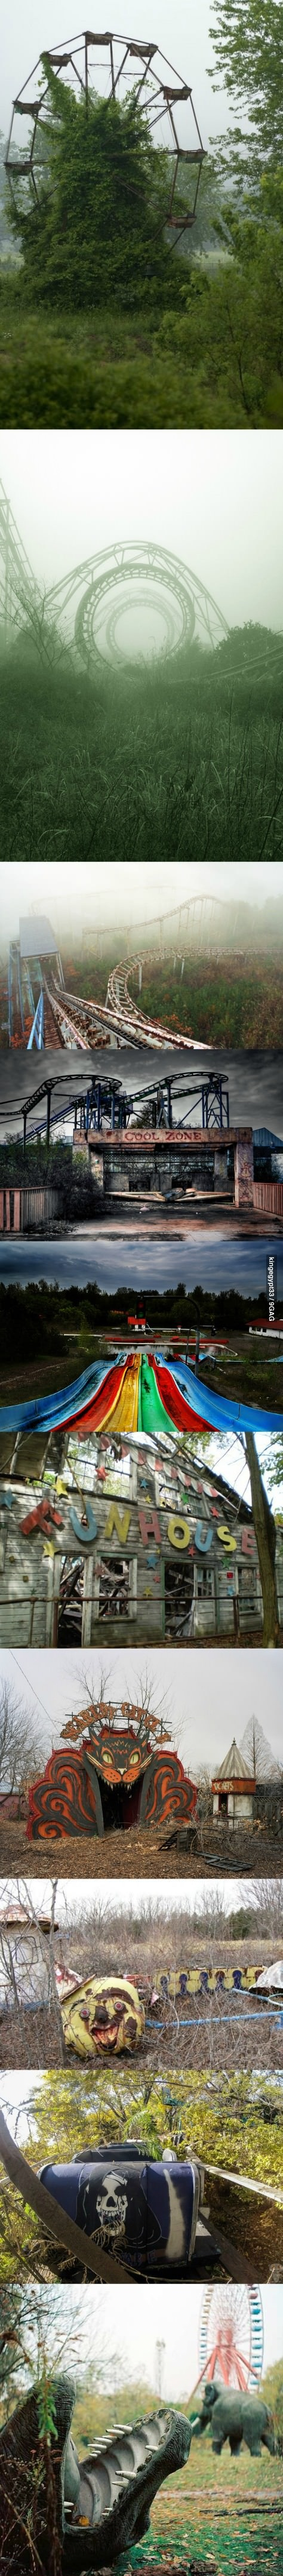 creepy and beautiful abandoned park